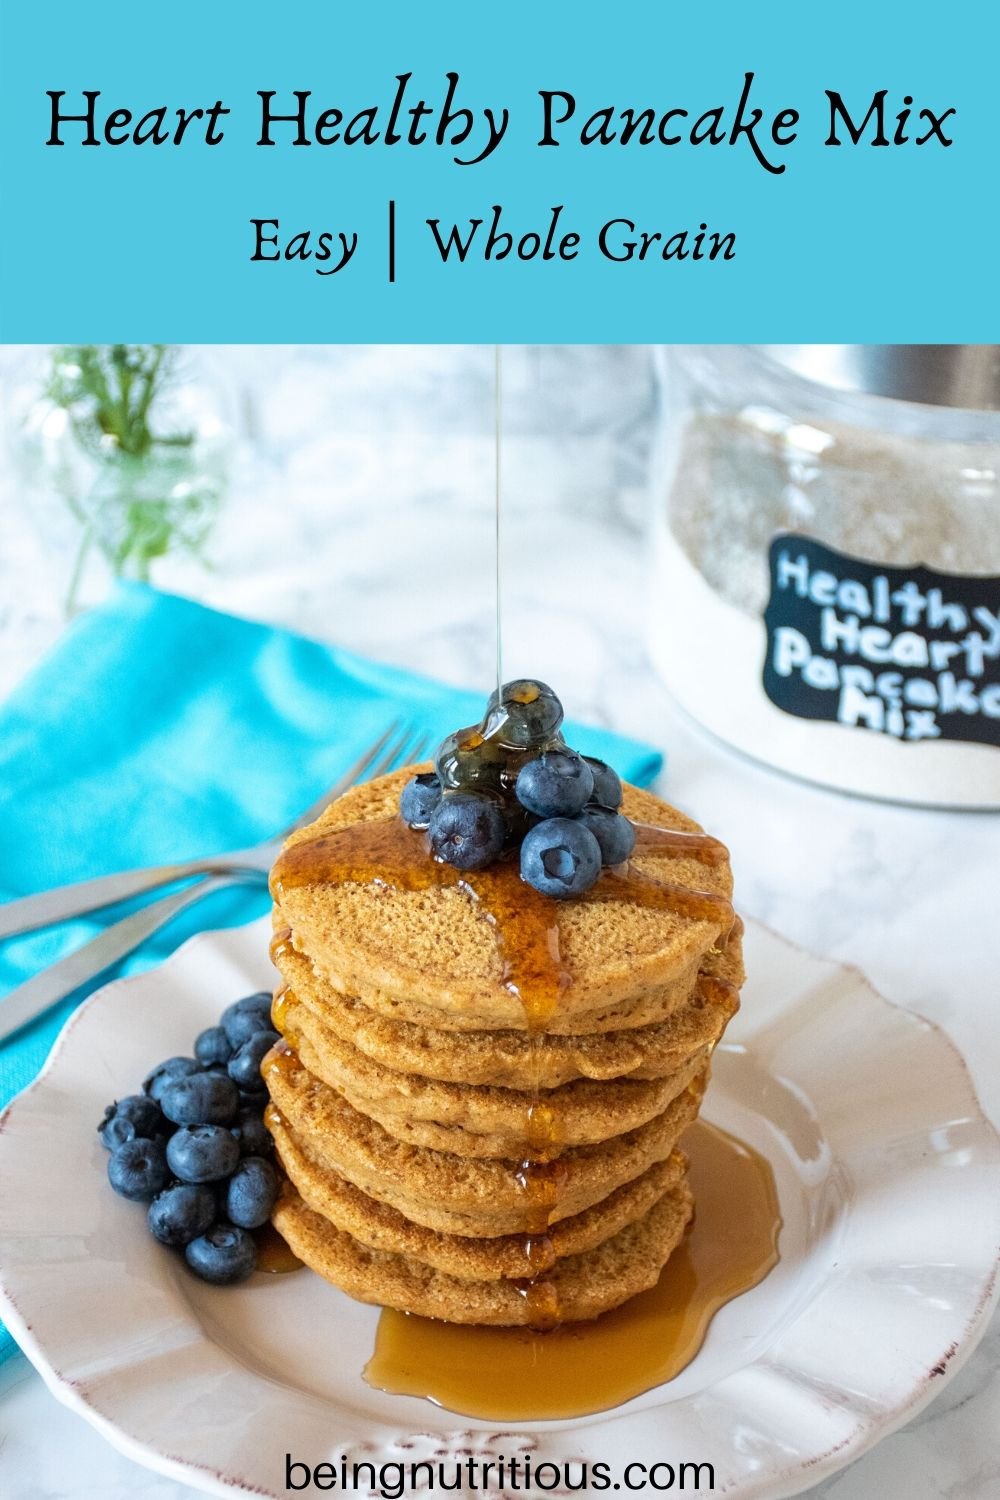 Stack of 6 whole wheat pancakes, with a pile of fresh blueberries on top, and syrup being poured over. Glass jar that reads 'healthy heart pancake mix' is visible in the background.